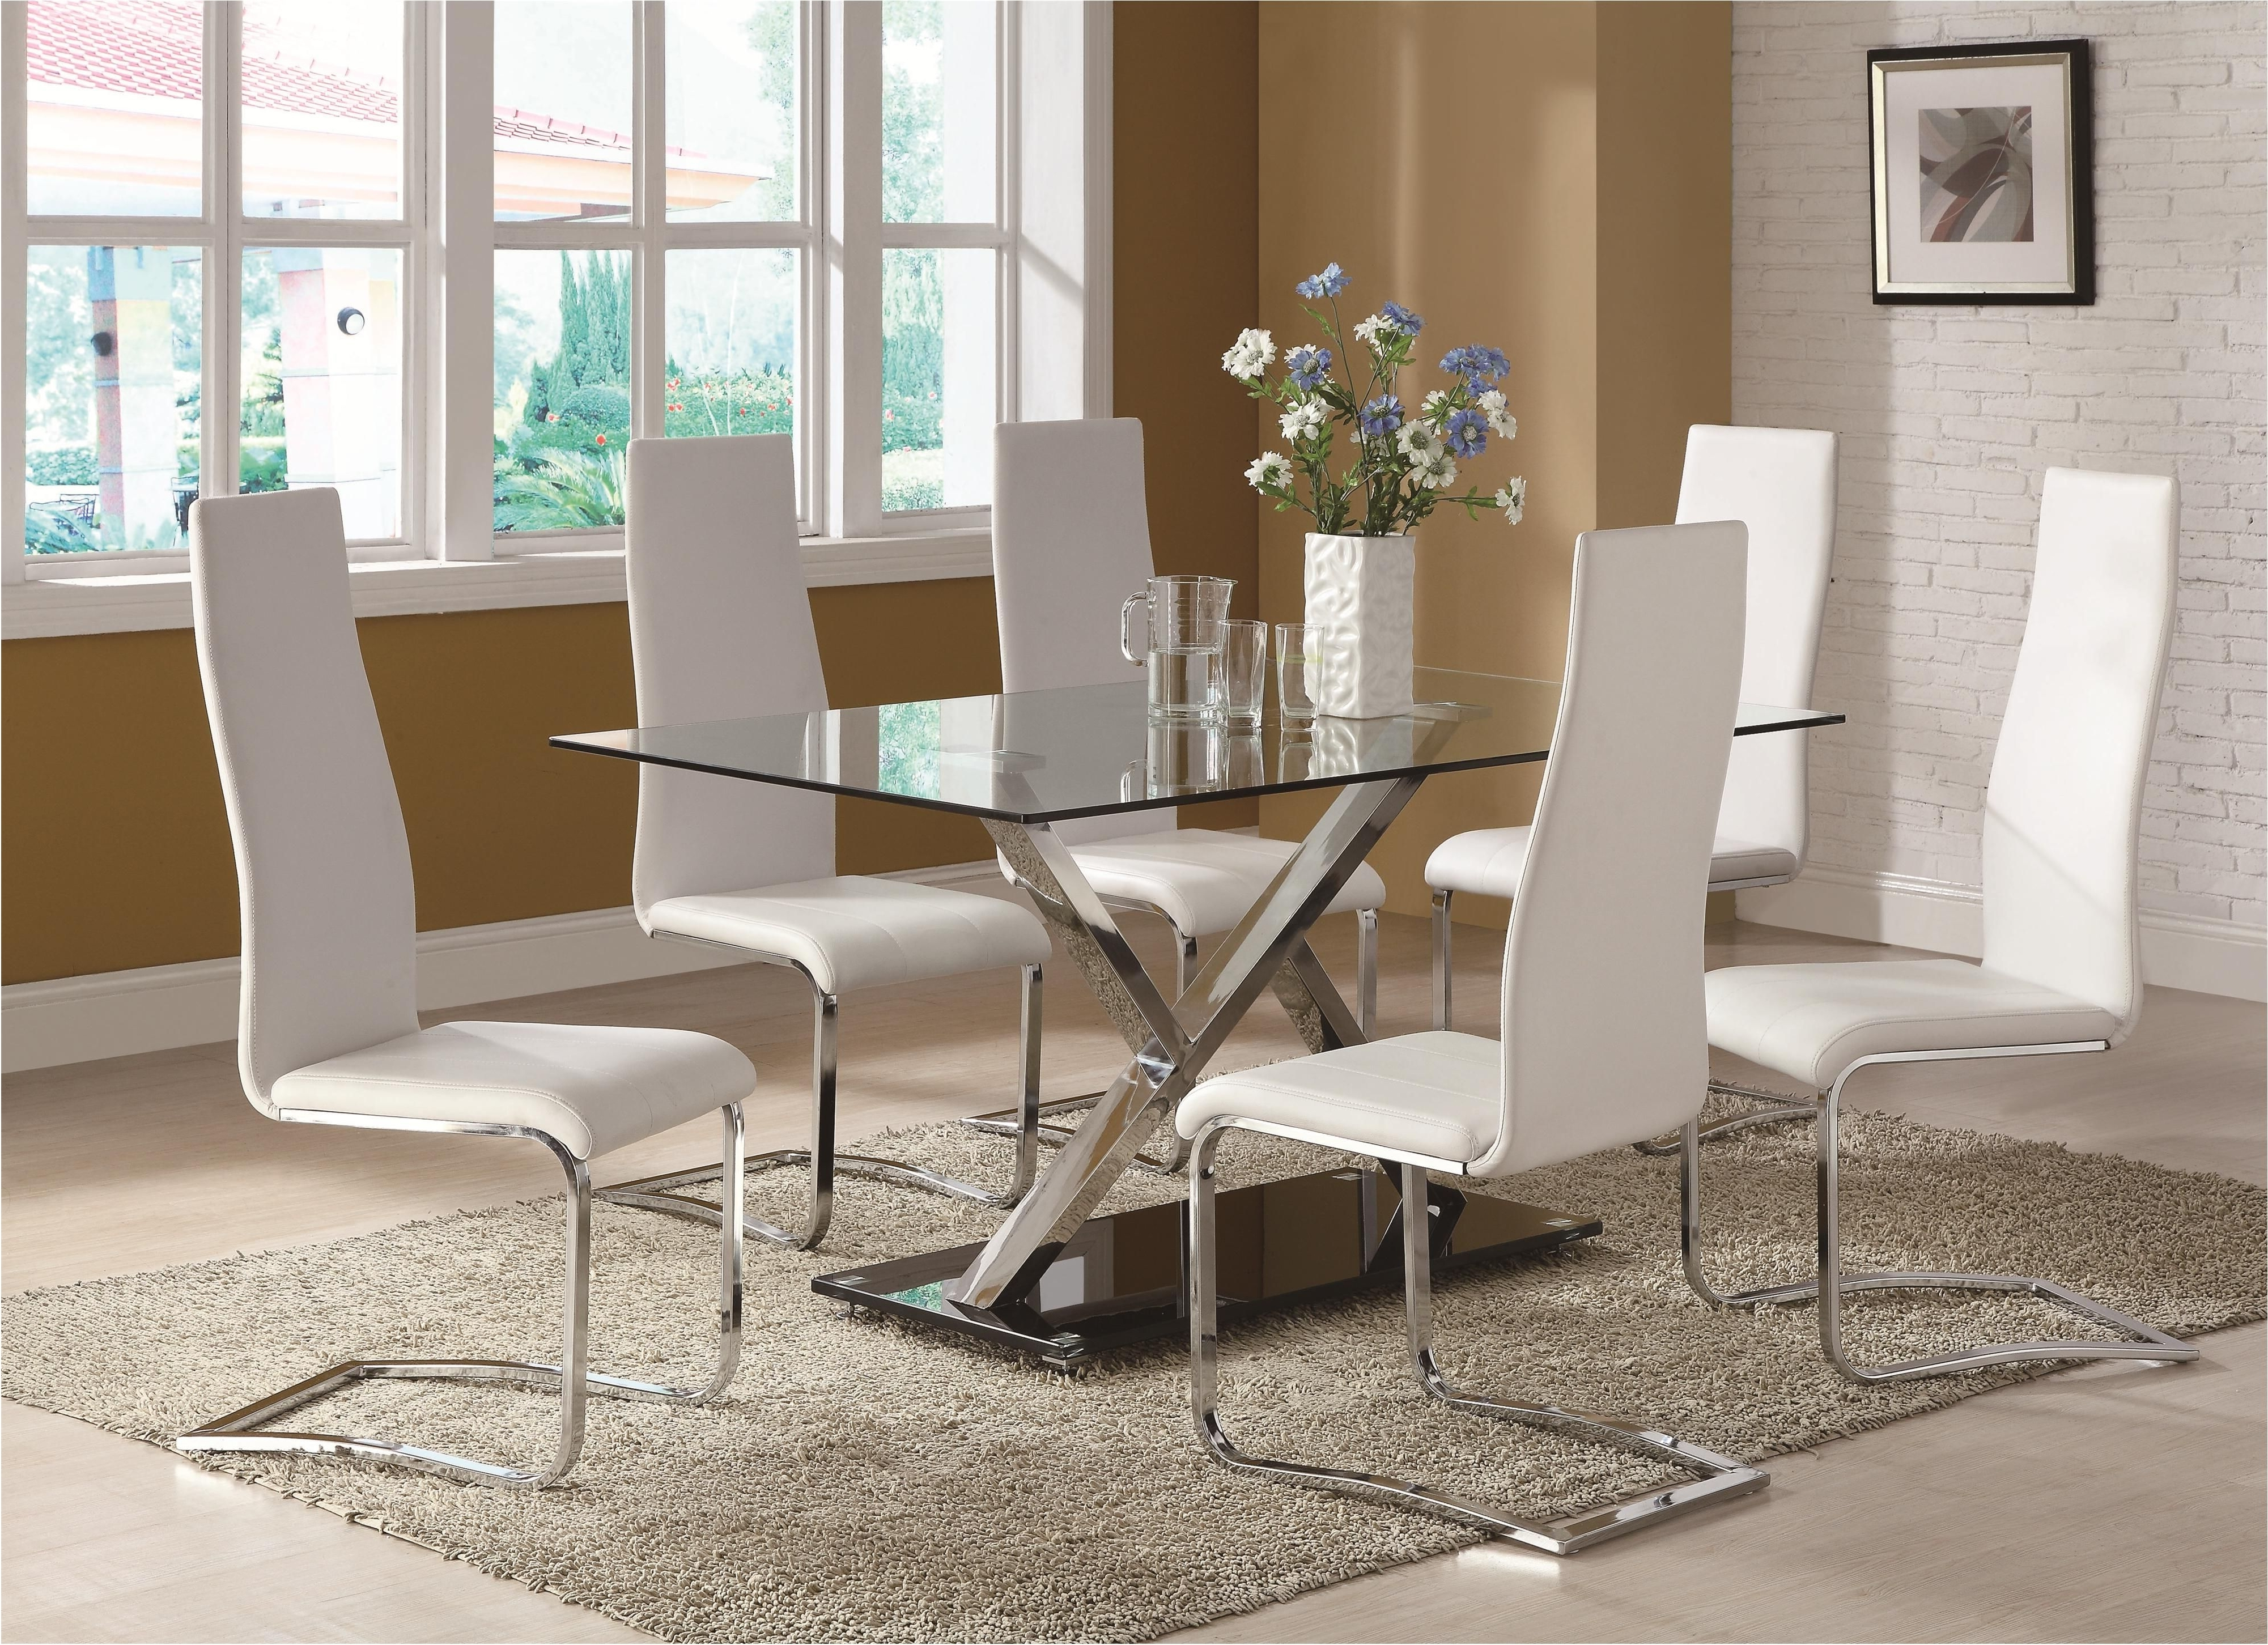 Modern Dining Room Sets For Well Liked Nice Breathtaking Modern Glass Dining Table Set 2 Room Sets Be Black (View 25 of 25)